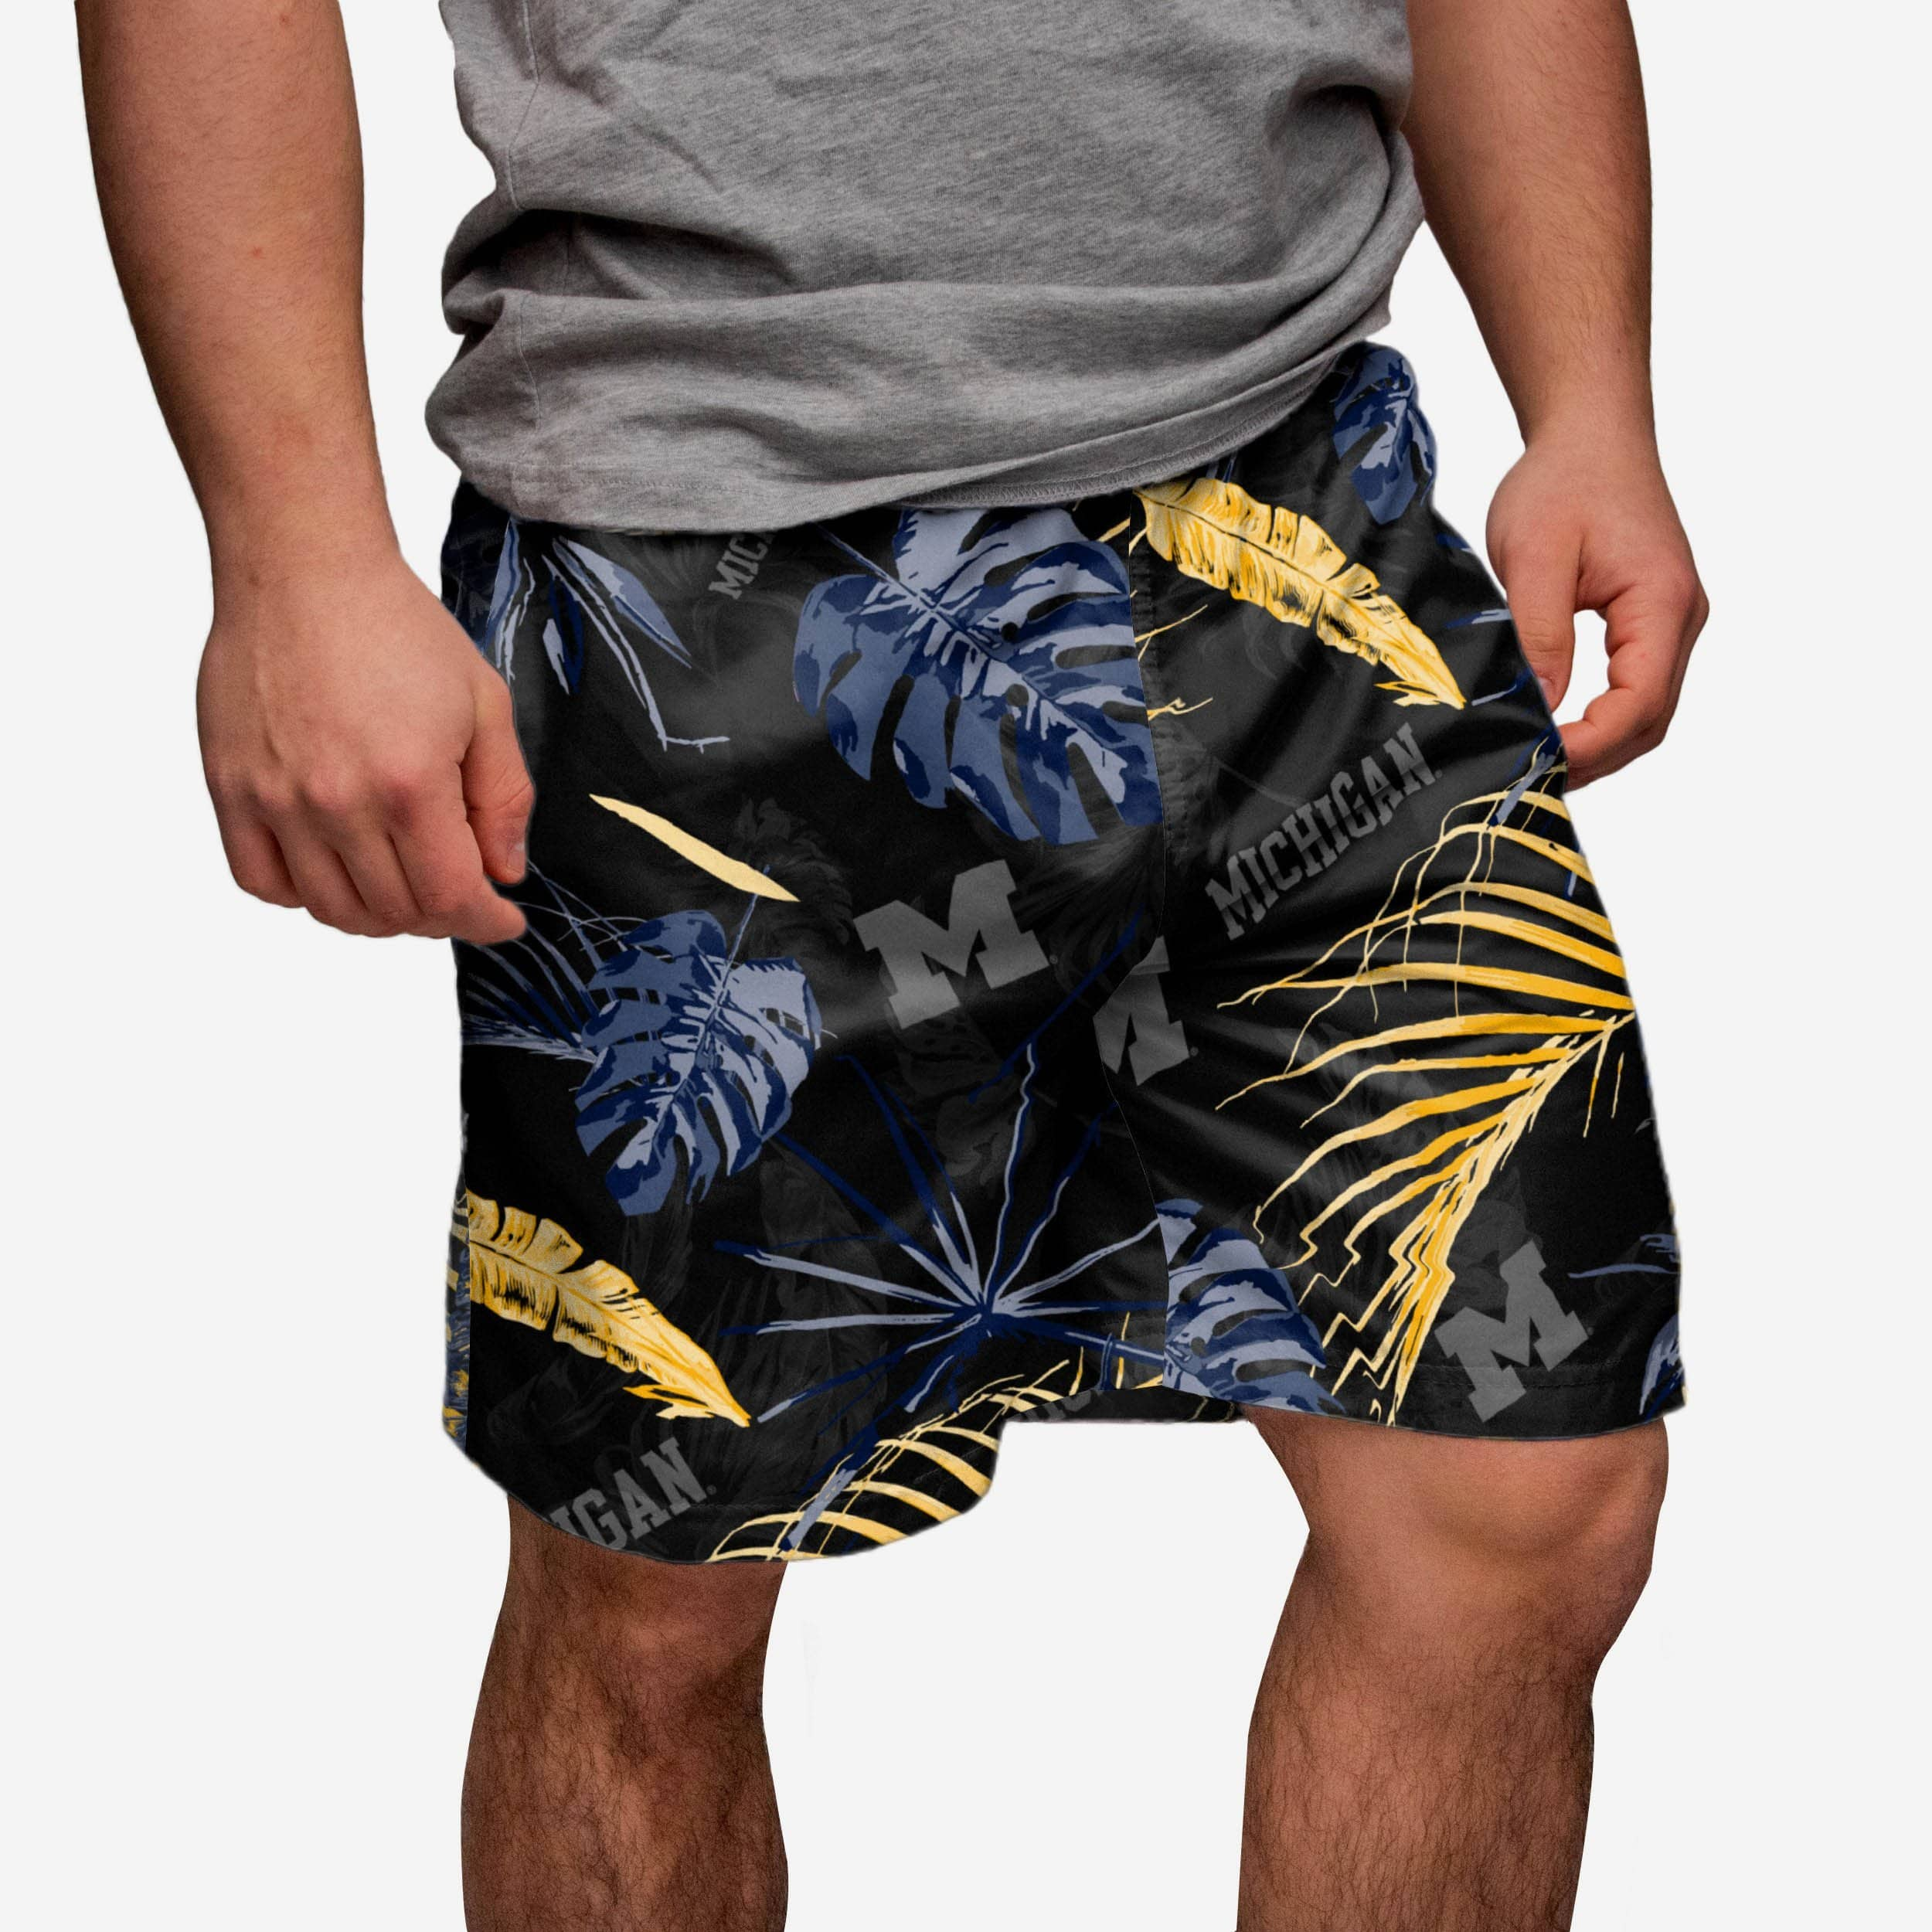 071106b4a9 Michigan Wolverines Neon Palm Shorts FOCO.com